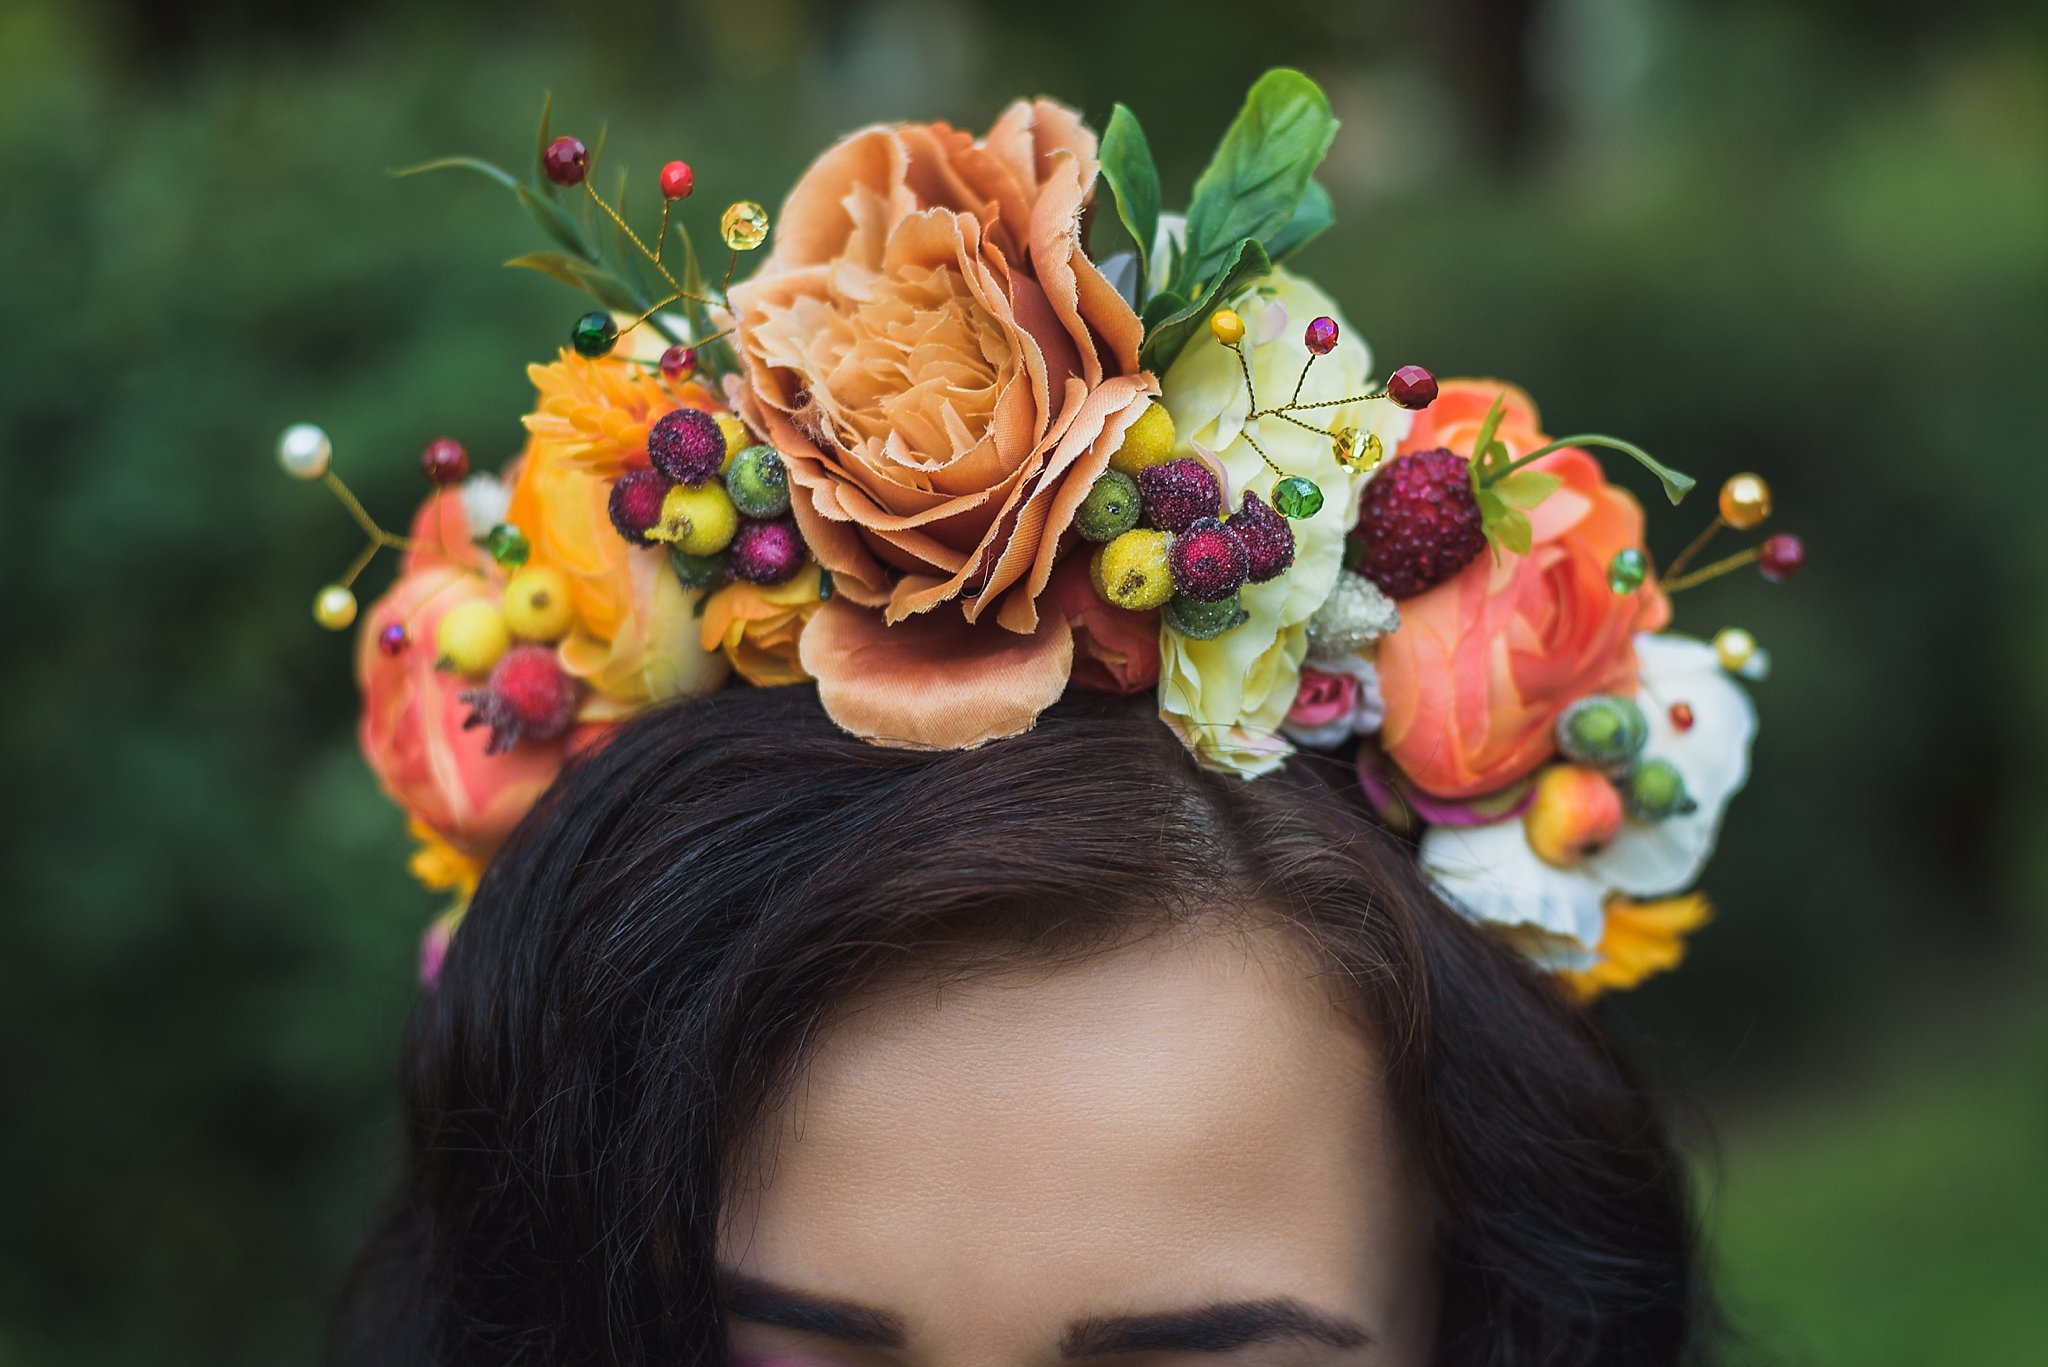 Attractive young woman with orange flowers crown